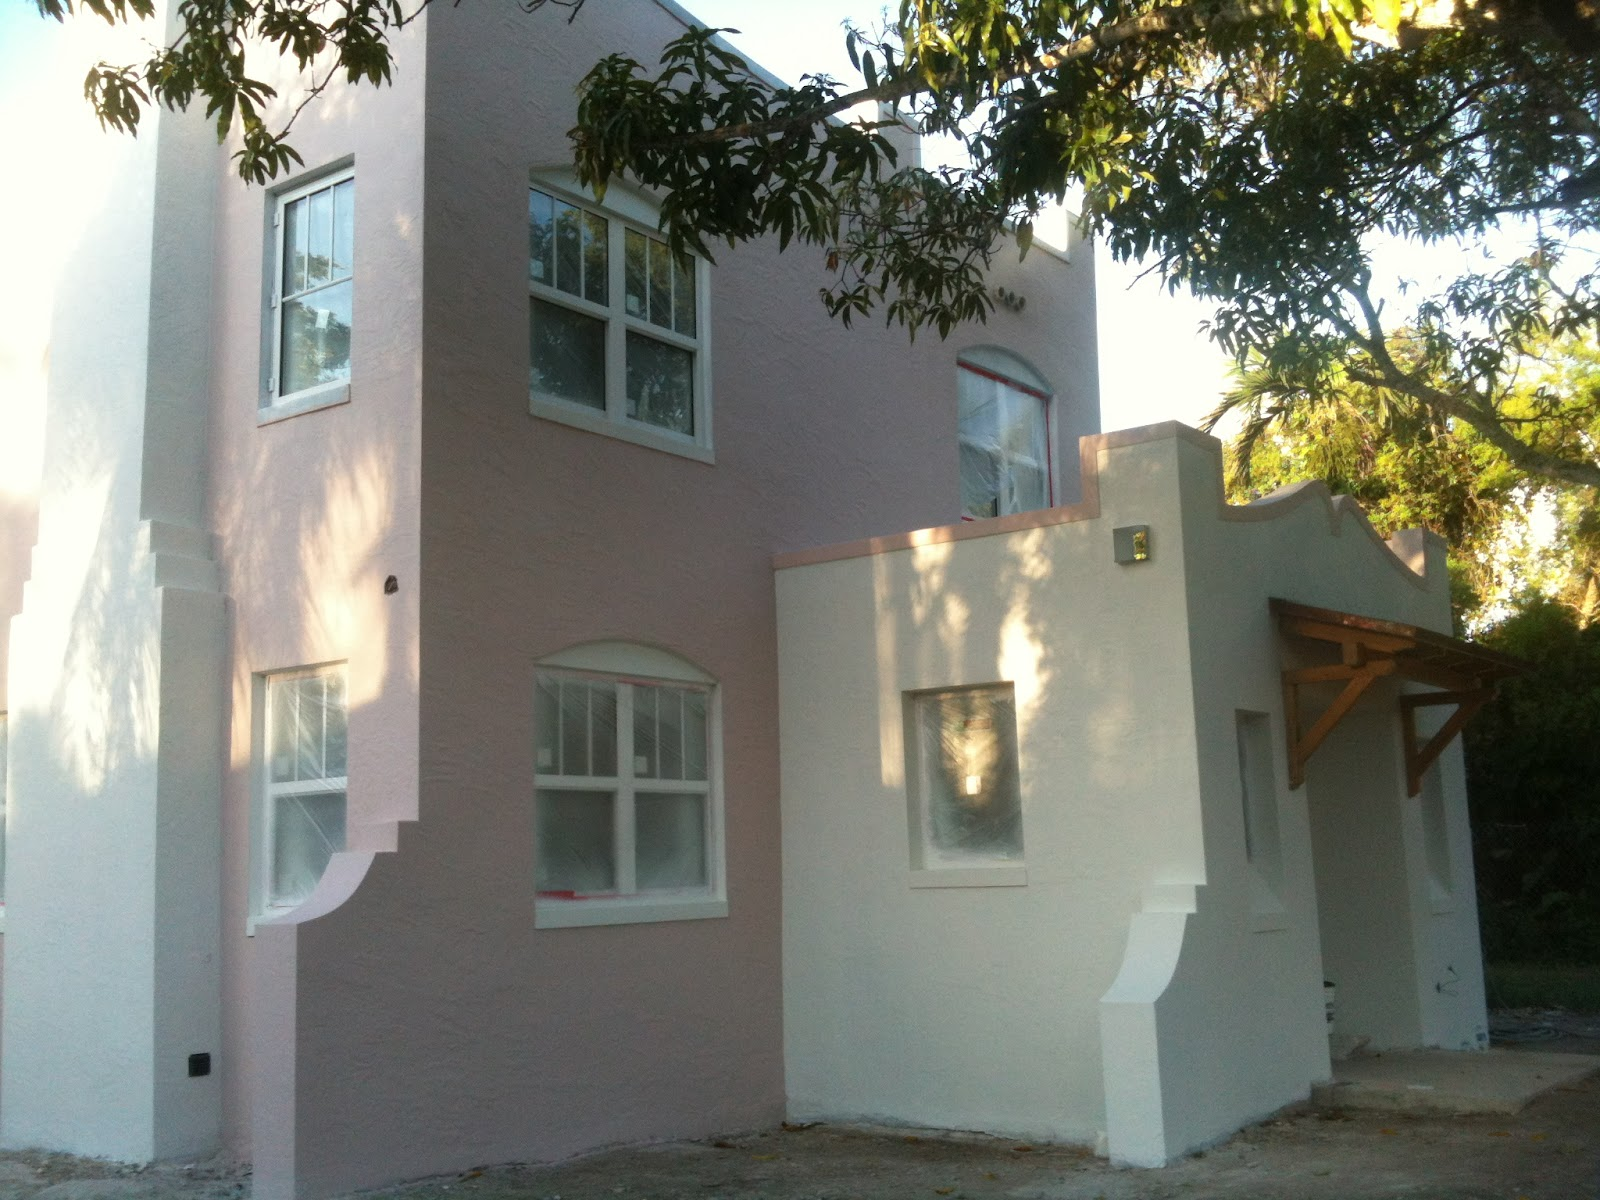 This Old Coconut Grove Update On Exterior Painting